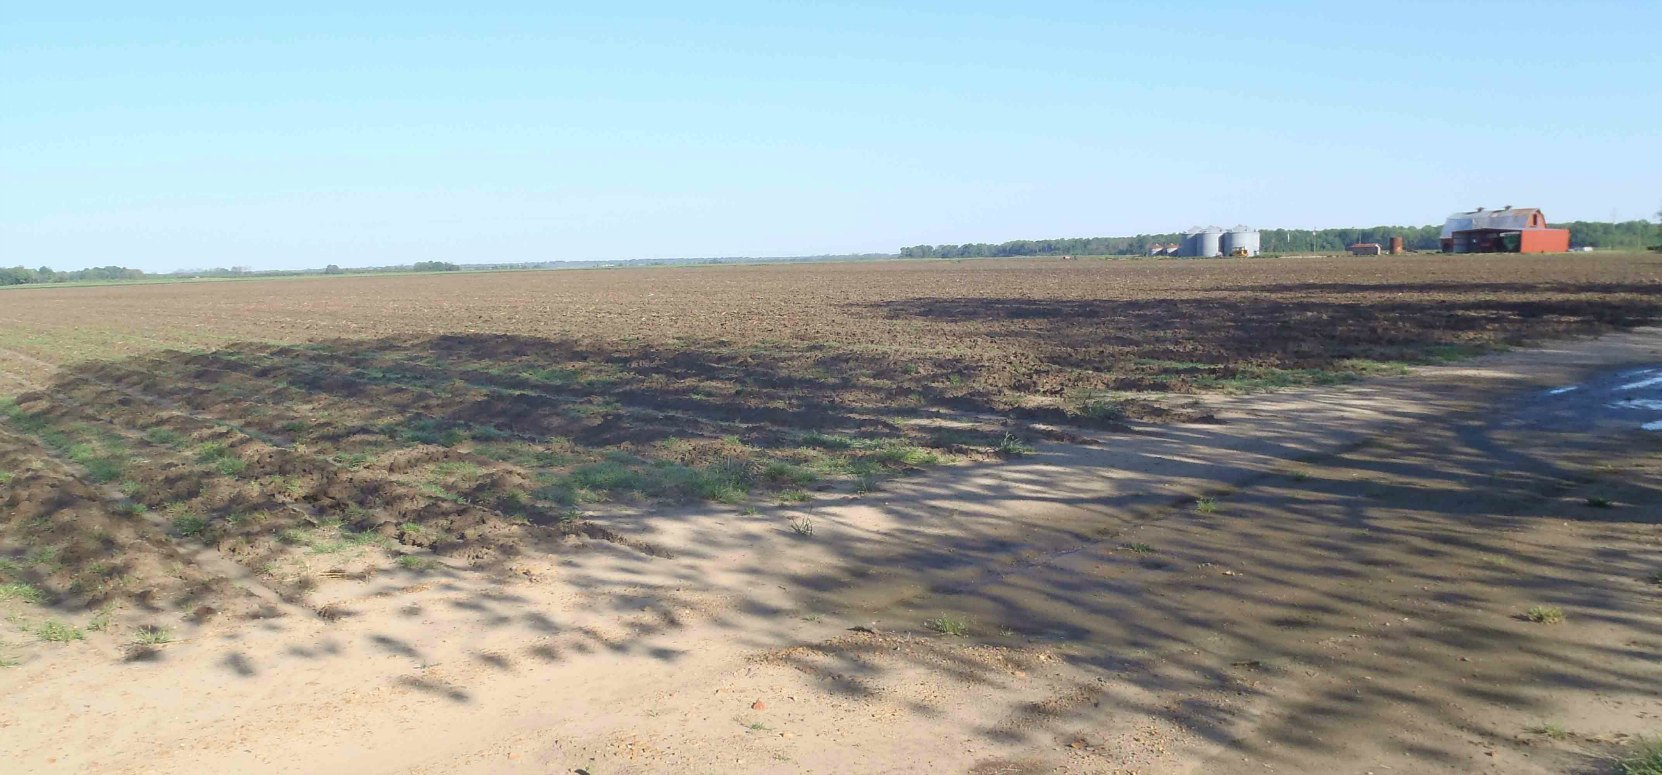 View of the Stovall farms fields from the Muddy Waters House site. This is typical of the geography of Coahoma County around Clarksdale, Mississippi.